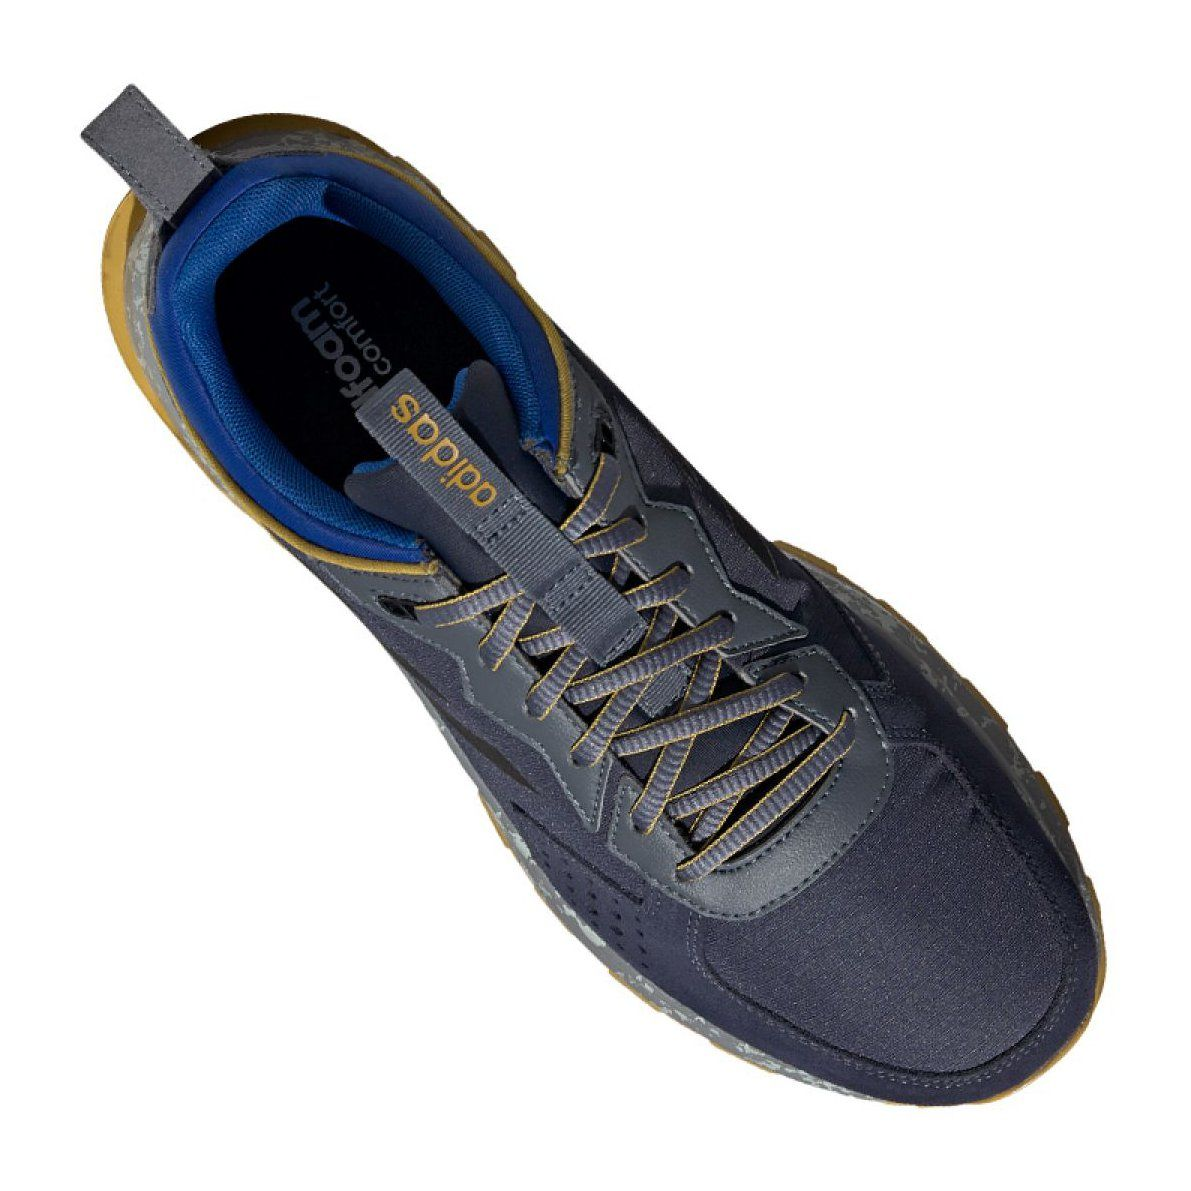 Running Shoes Adidas Resopnse Trail M Ee9829 Navy Multicolored Adidas Running Shoes Adidas Shoes Running Shoes